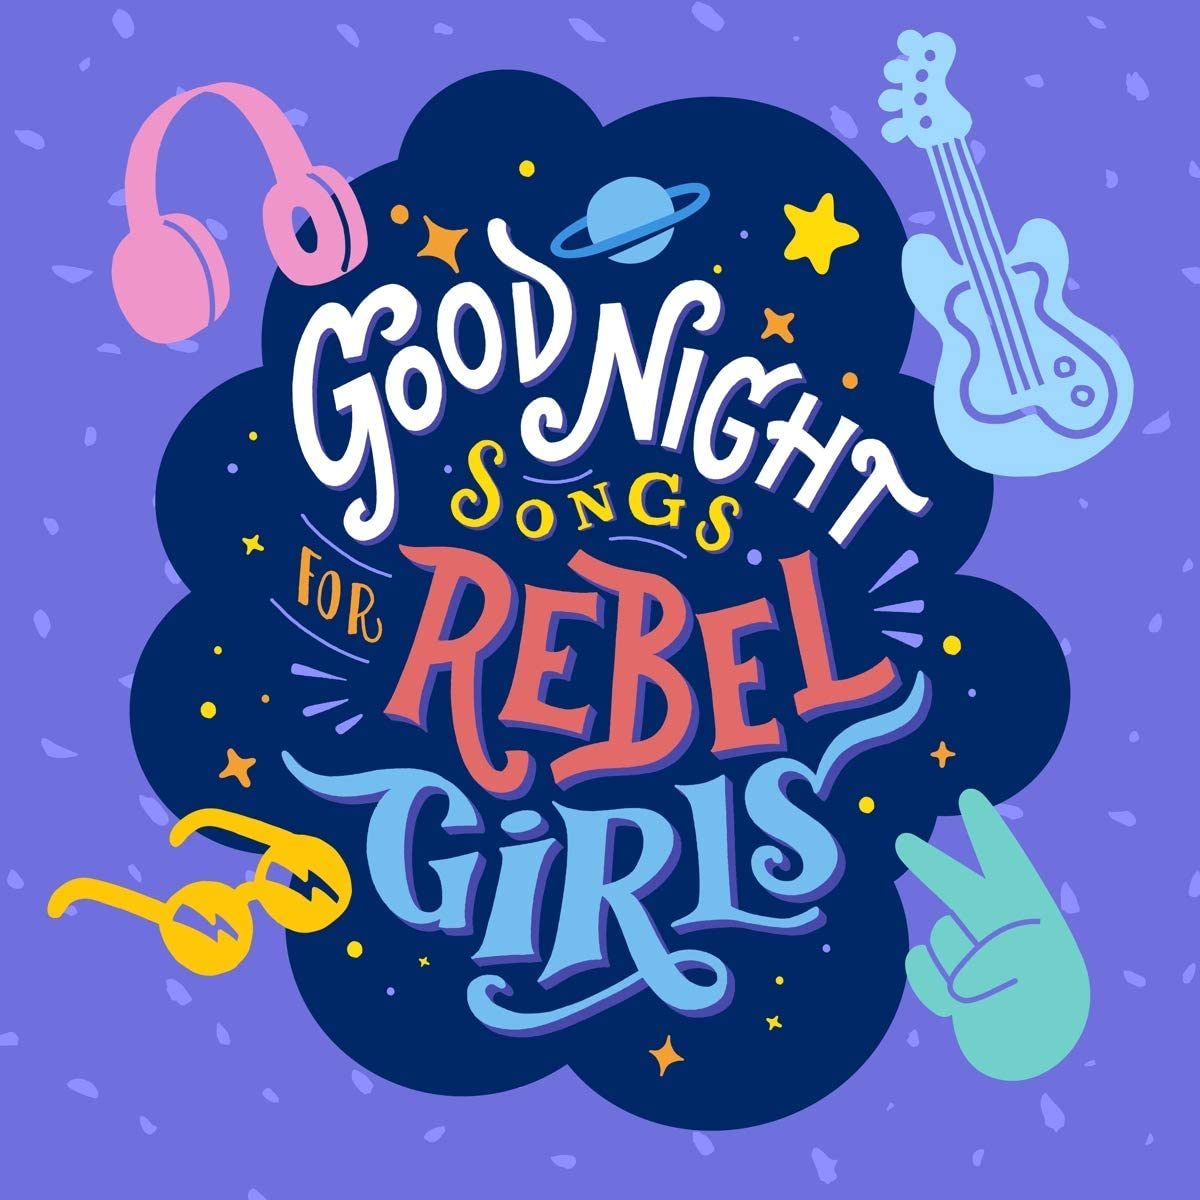 Amy Wadge, Beth Orton and KT Tunstall Among British Contributors On New Compilation LP 'Goodnight Songs For Rebel Girls'